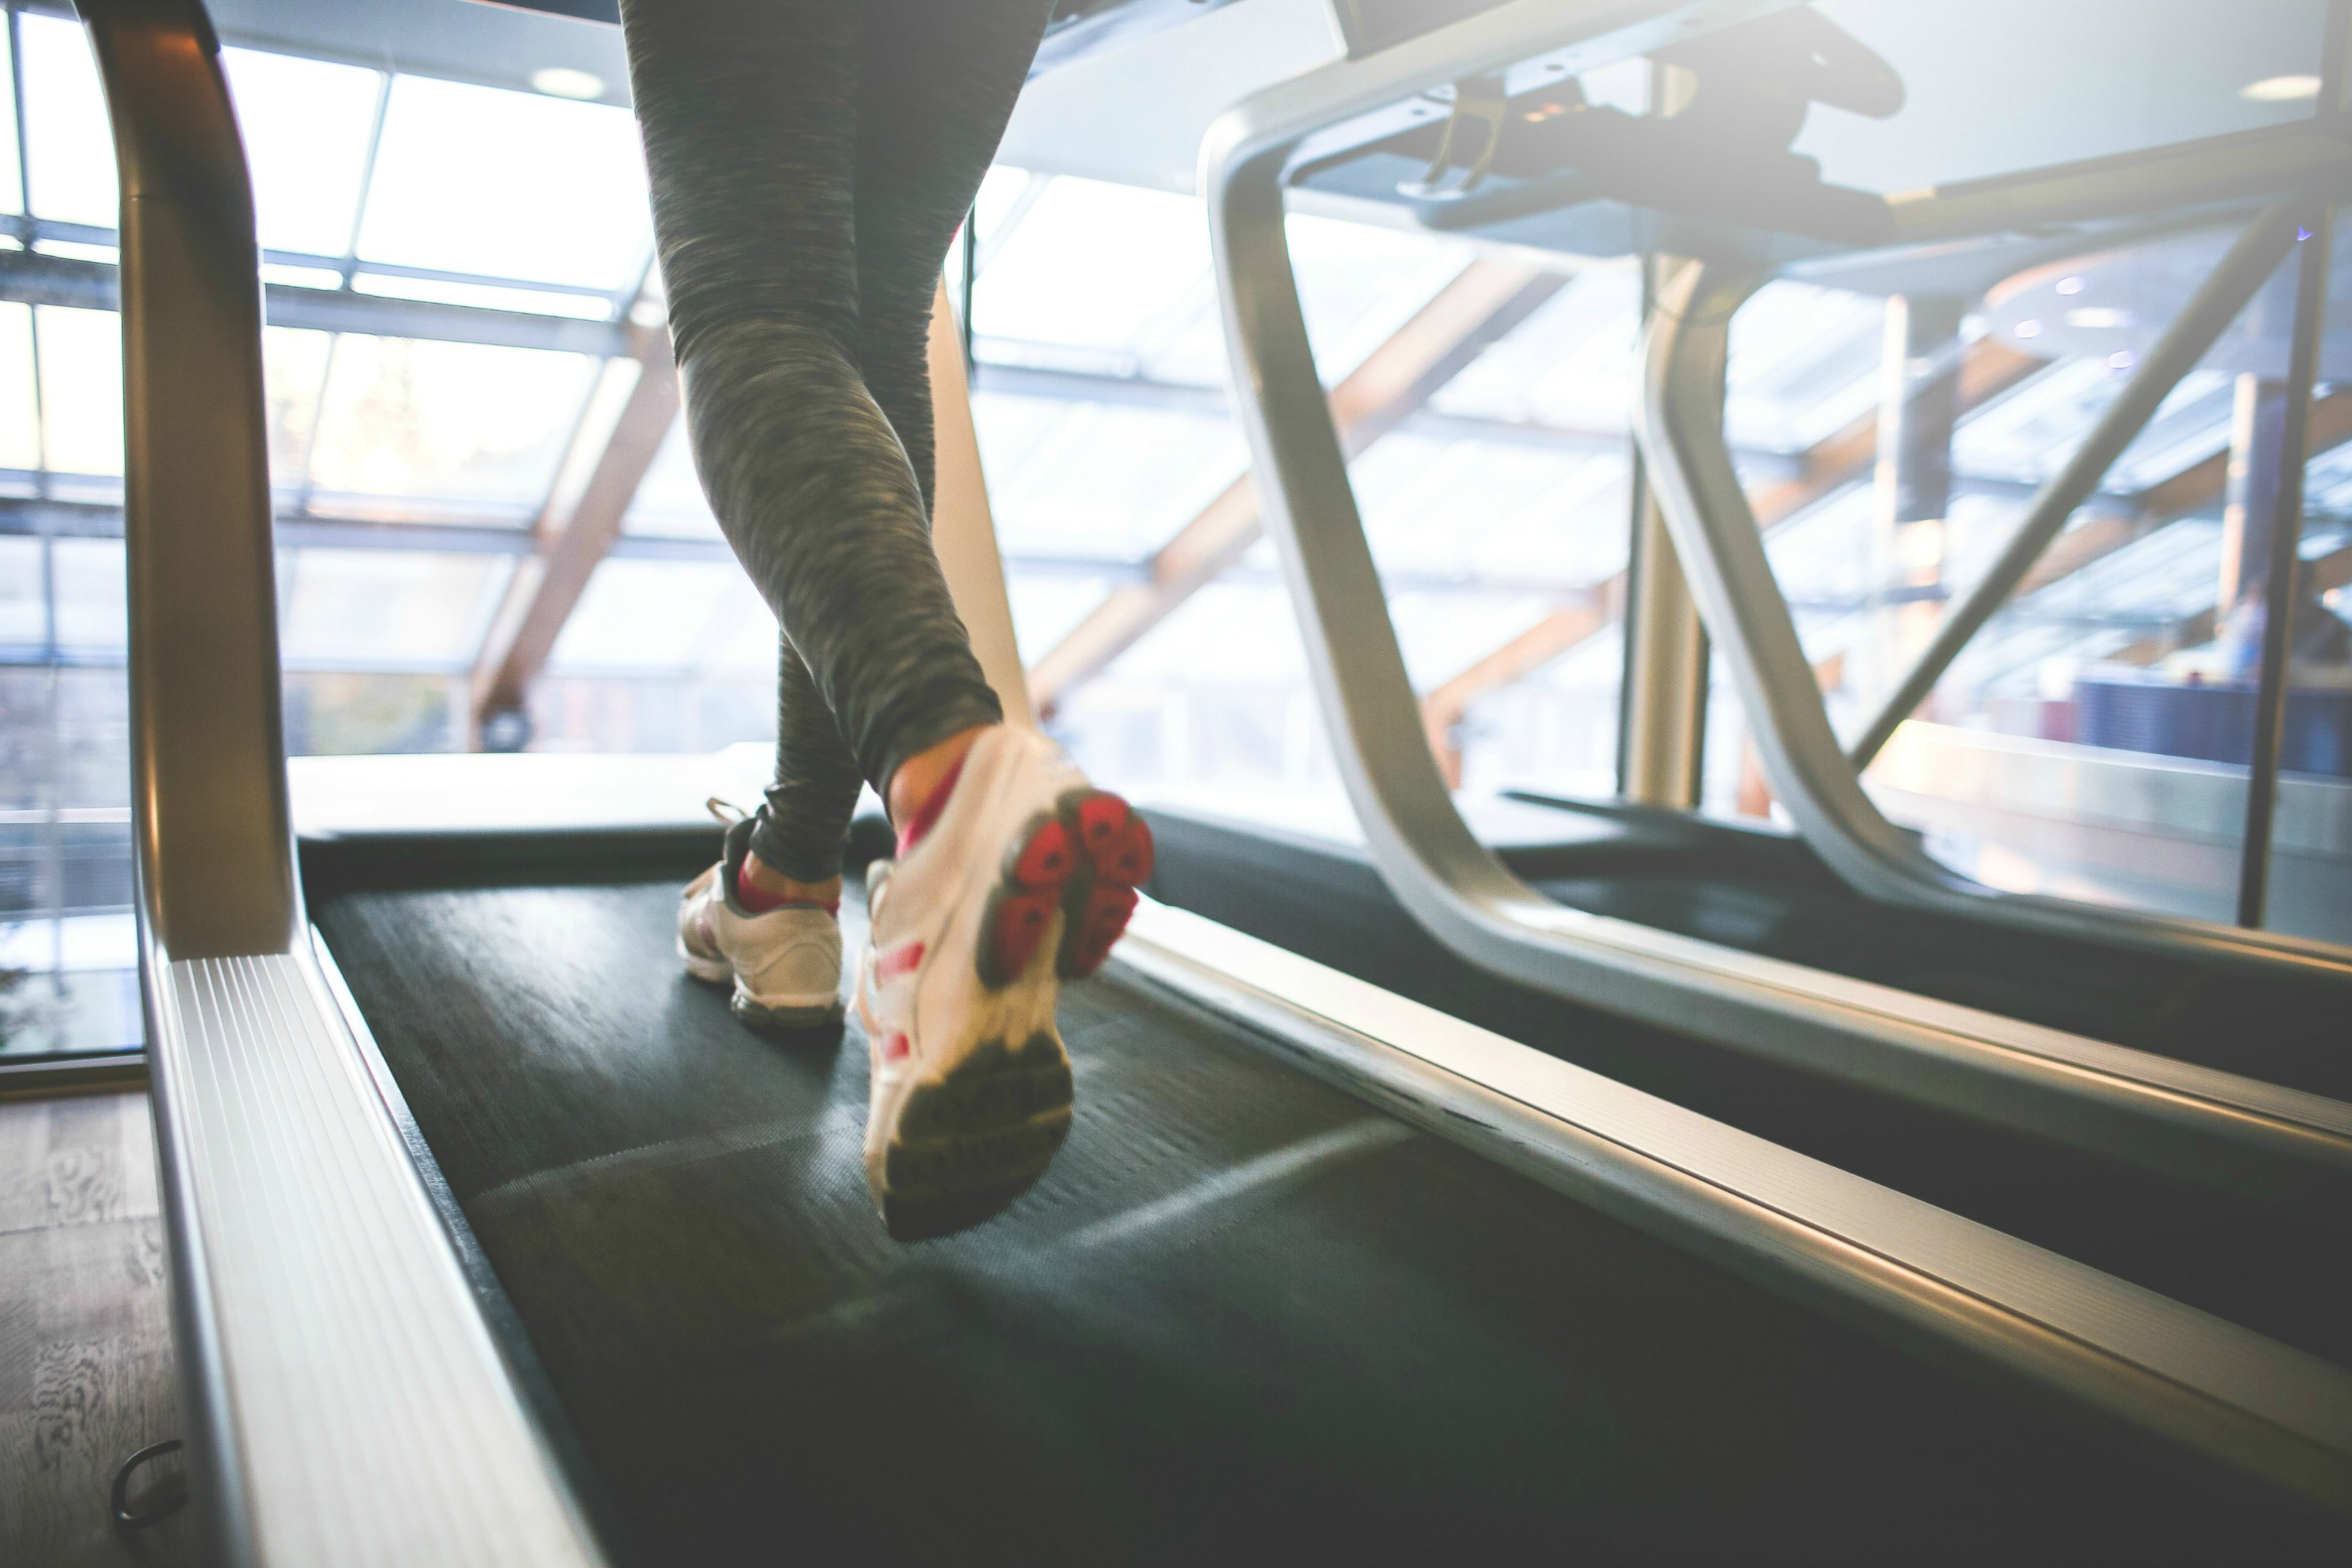 Beat Your Boredom - 9 Tips to Make Treadmill Workouts Fun